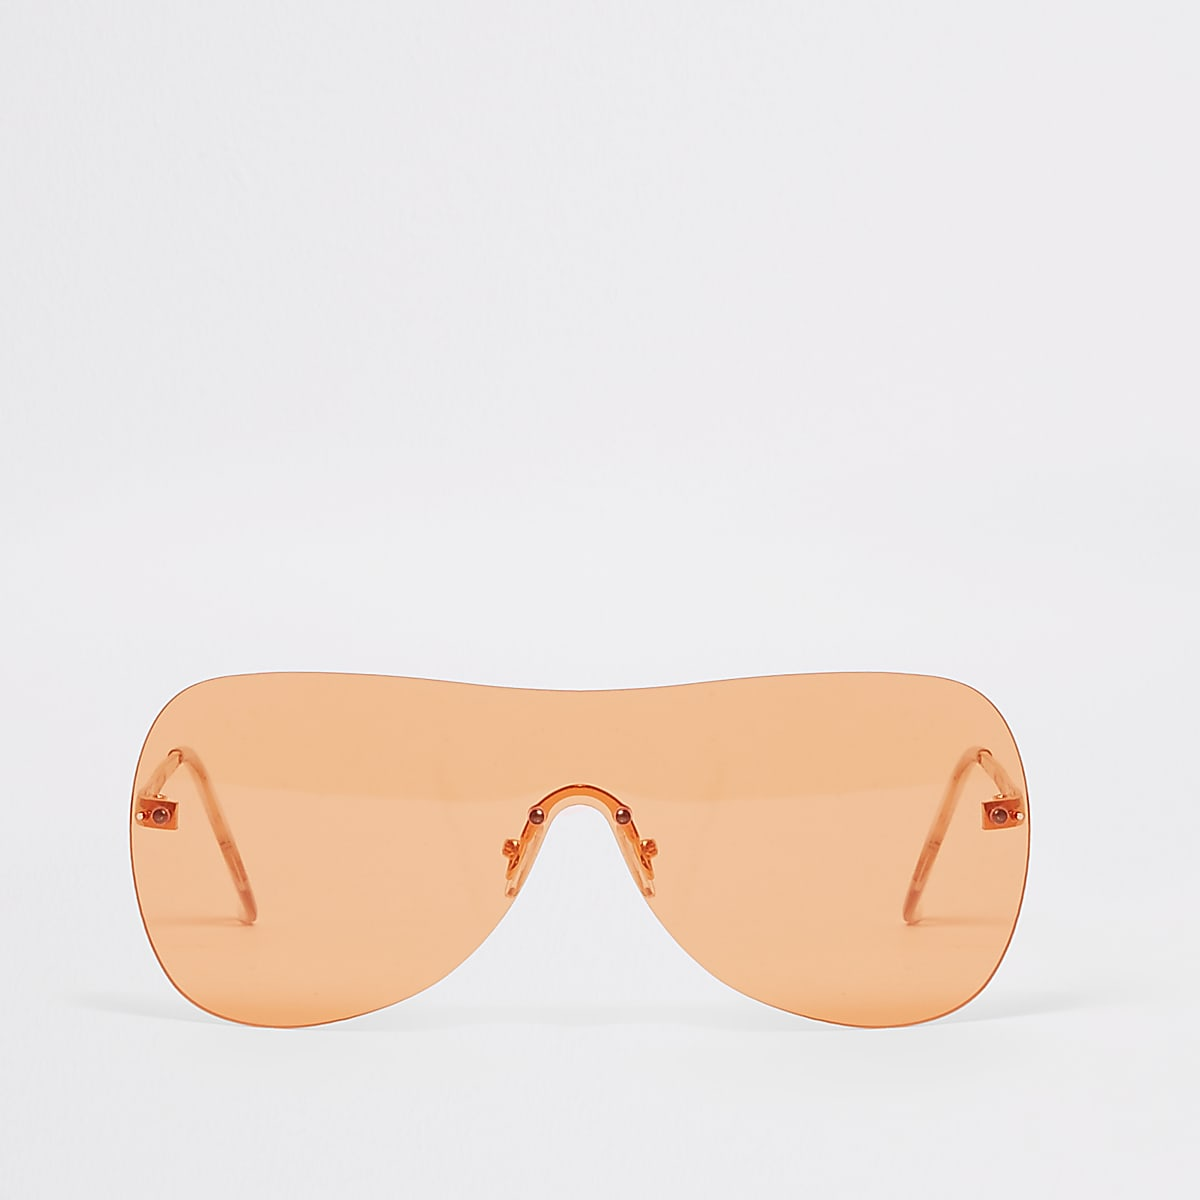 Orange tone visor aviator sunglasses